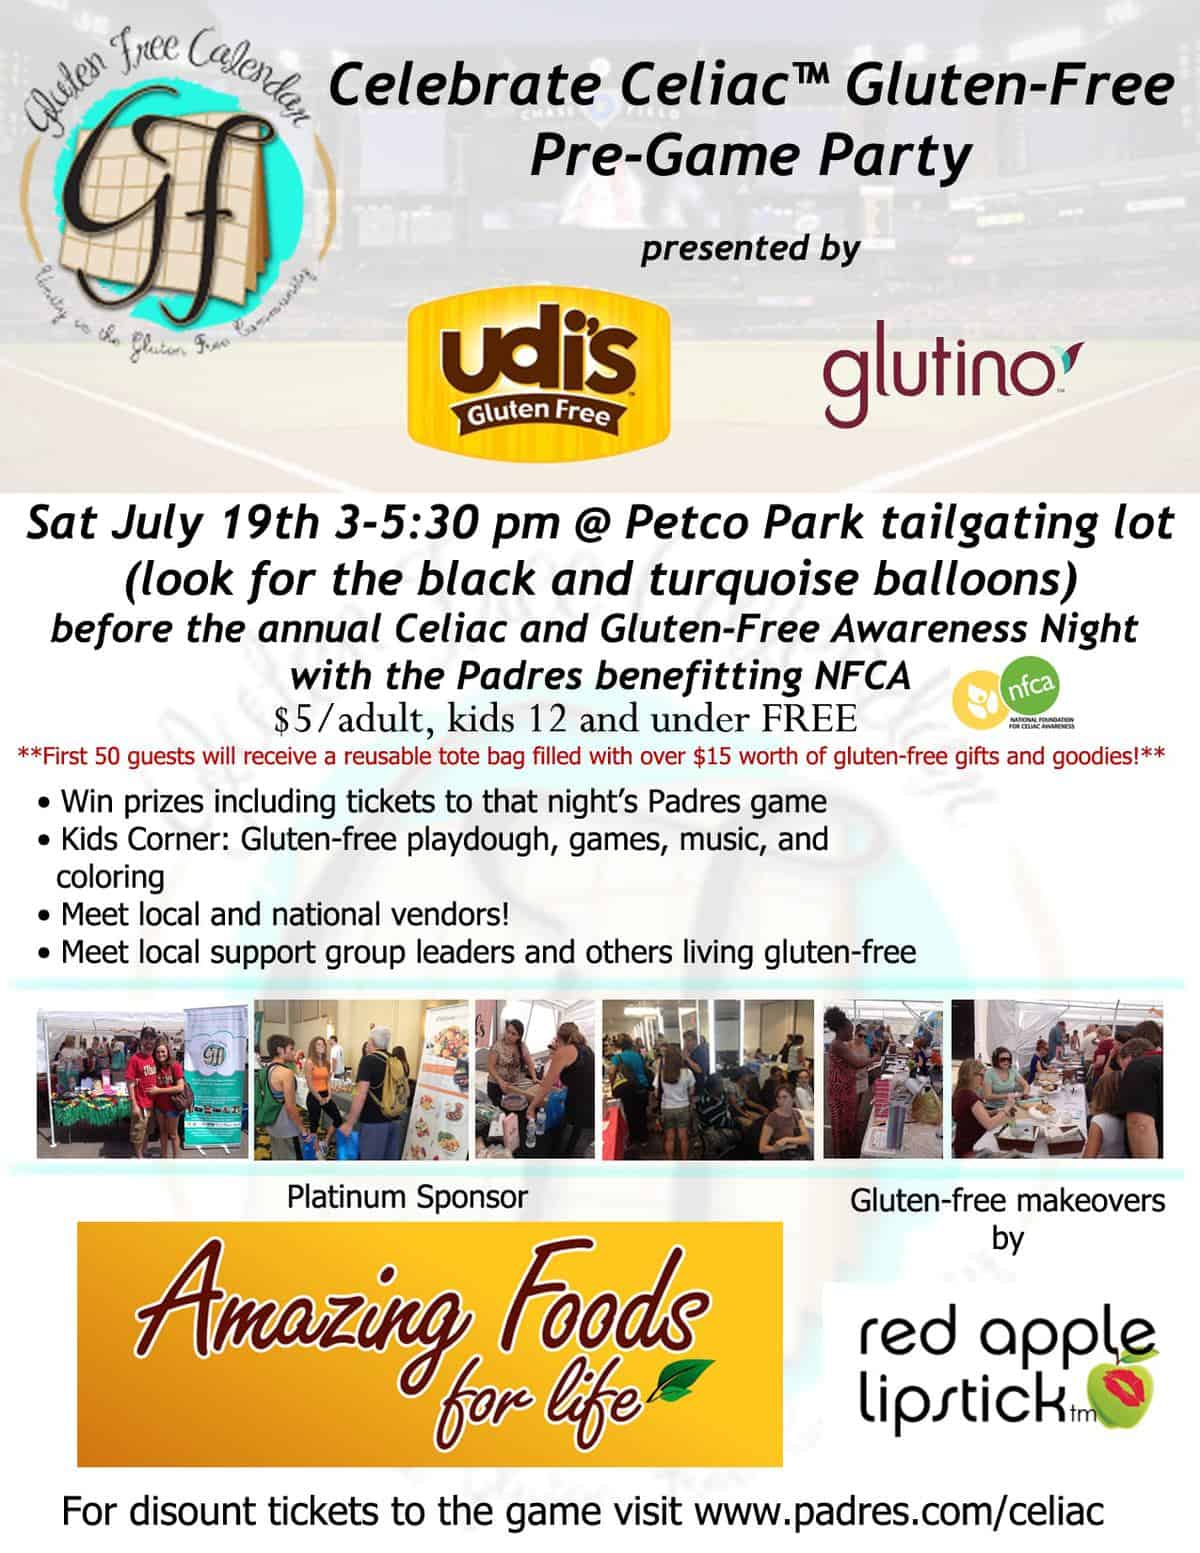 San Diego Celebrate Celiac™ Gluten-Free Event: FREE Tickets!